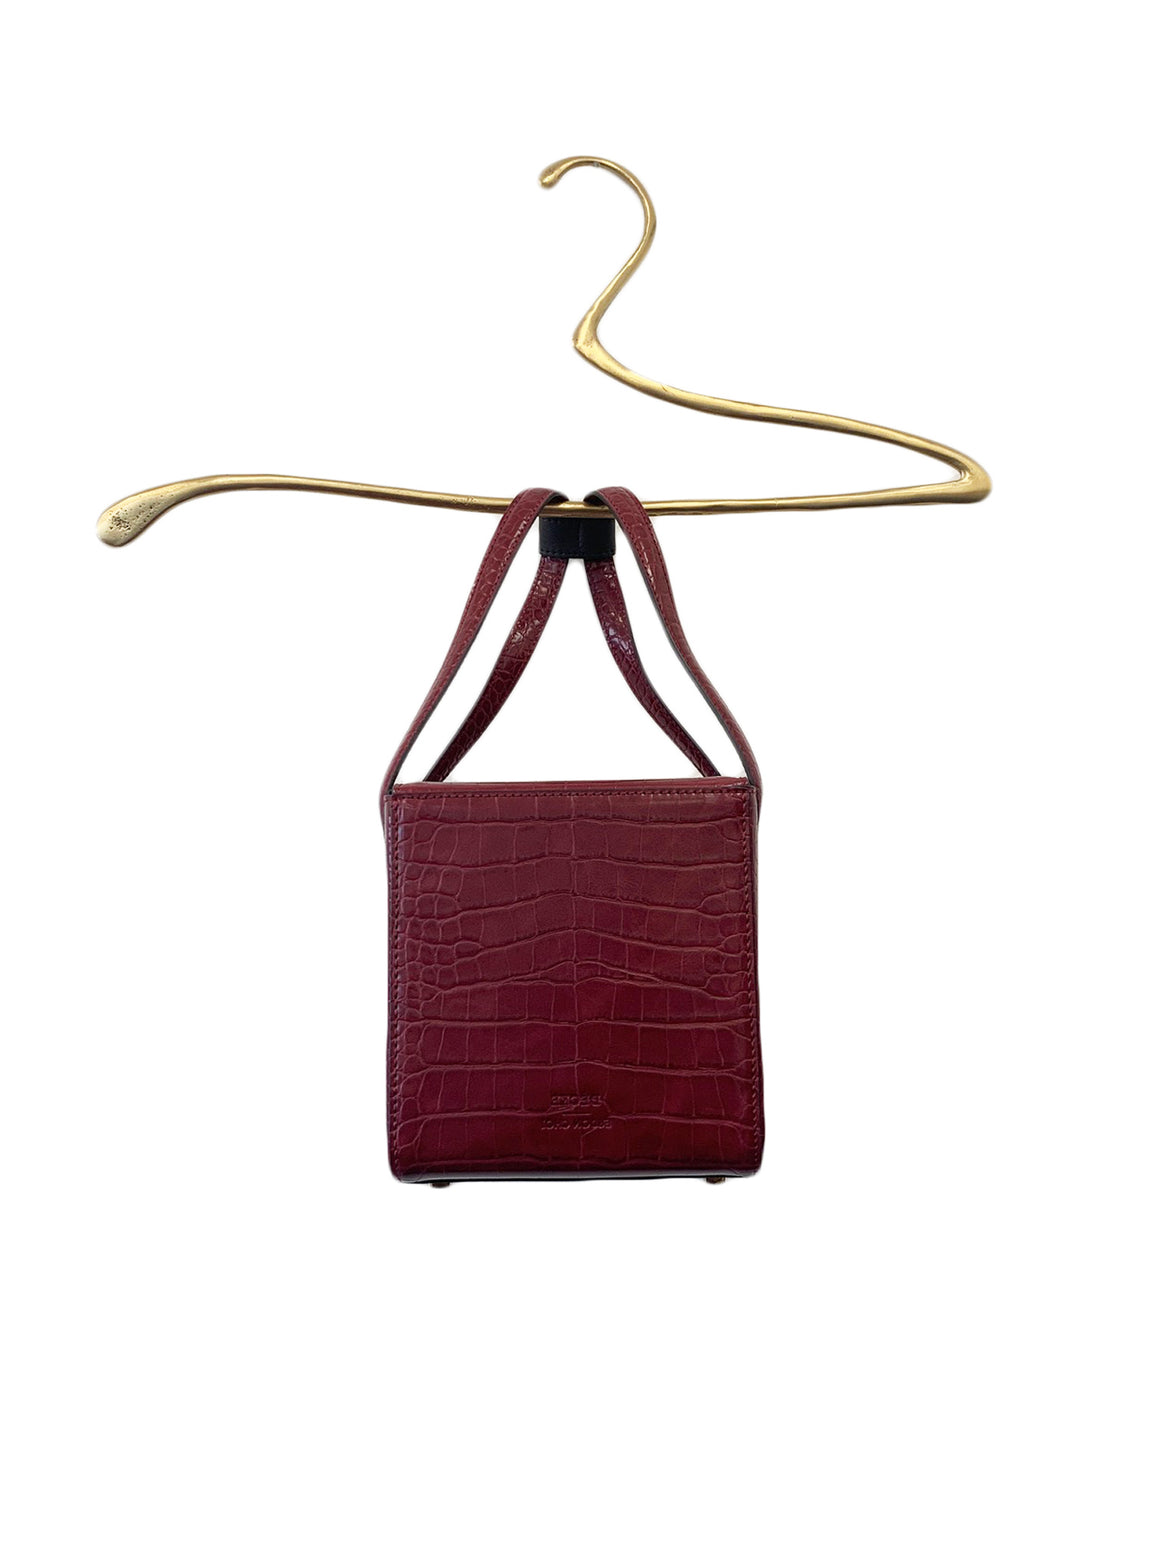 ELDA BAG (BURGUNDY)